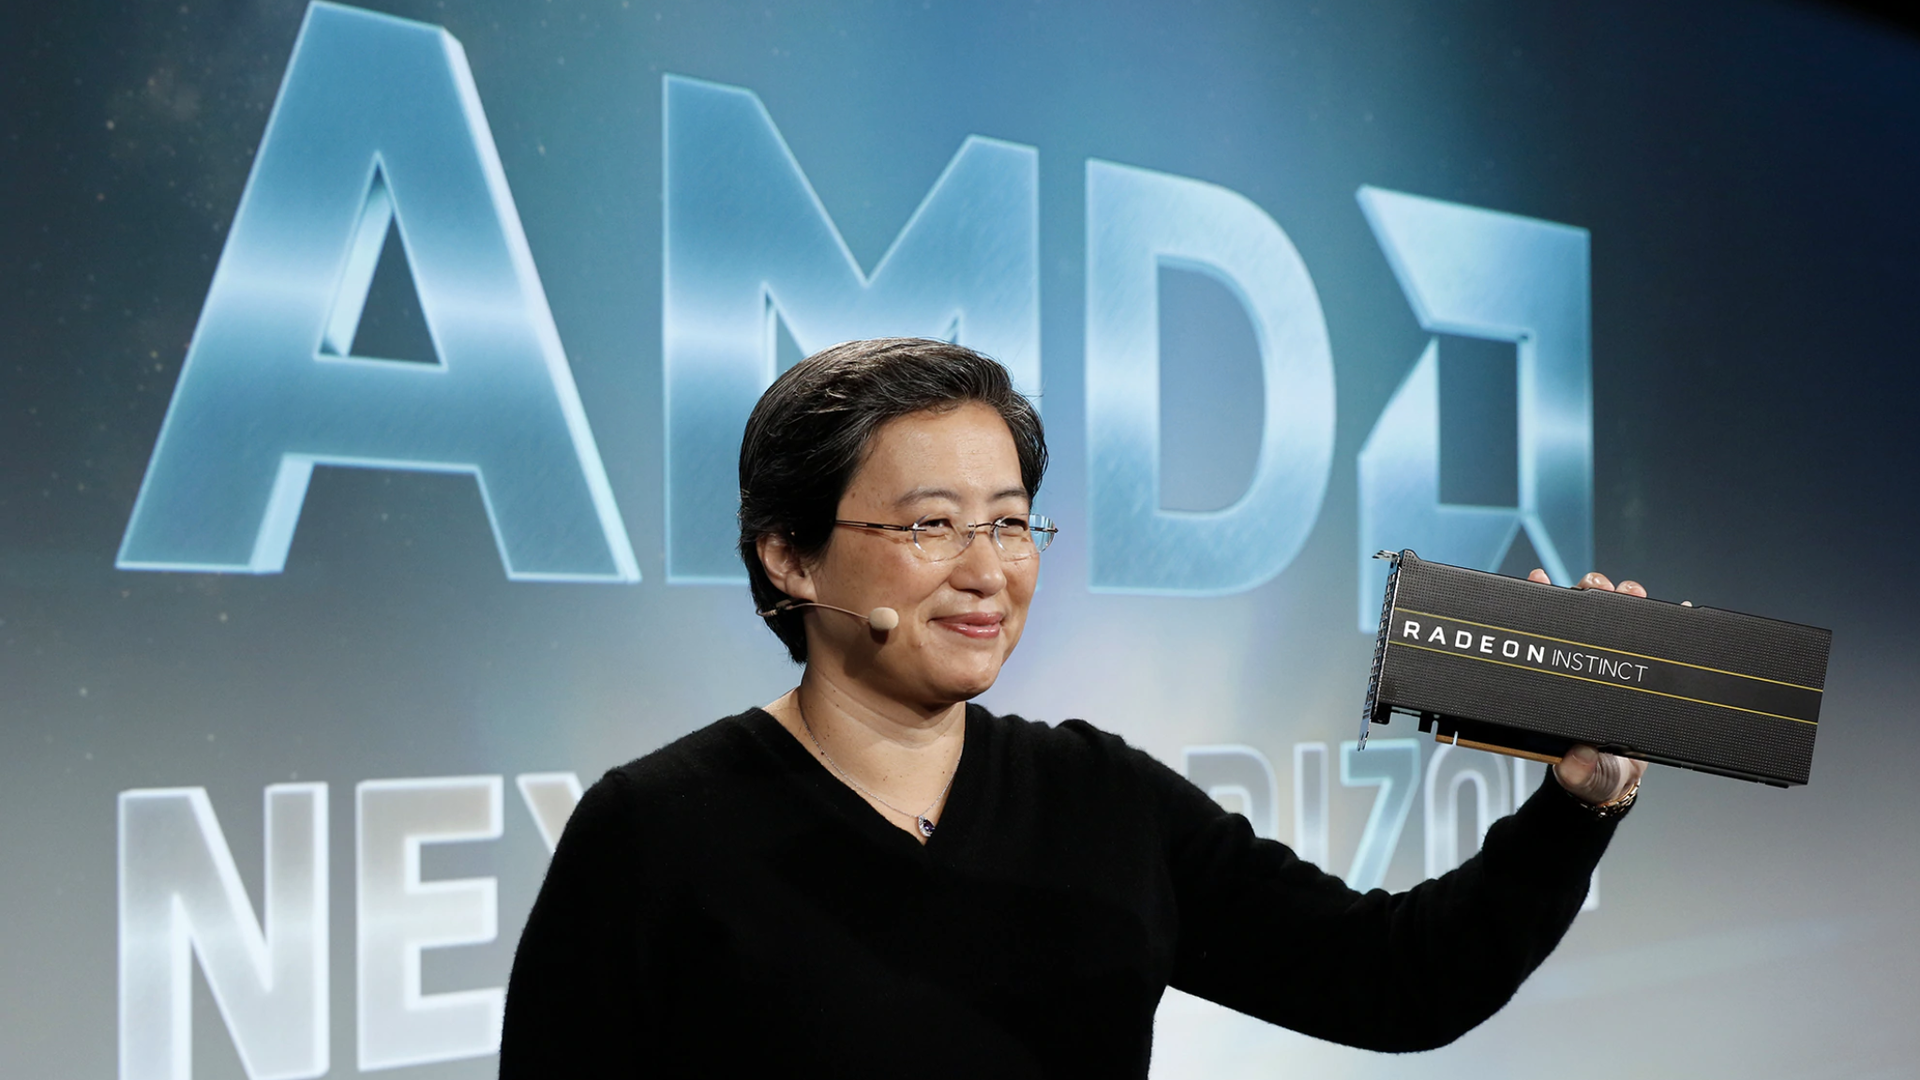 AMD CEO Lisa Su, holding up AMD's next-generation graphics chip for the data center.